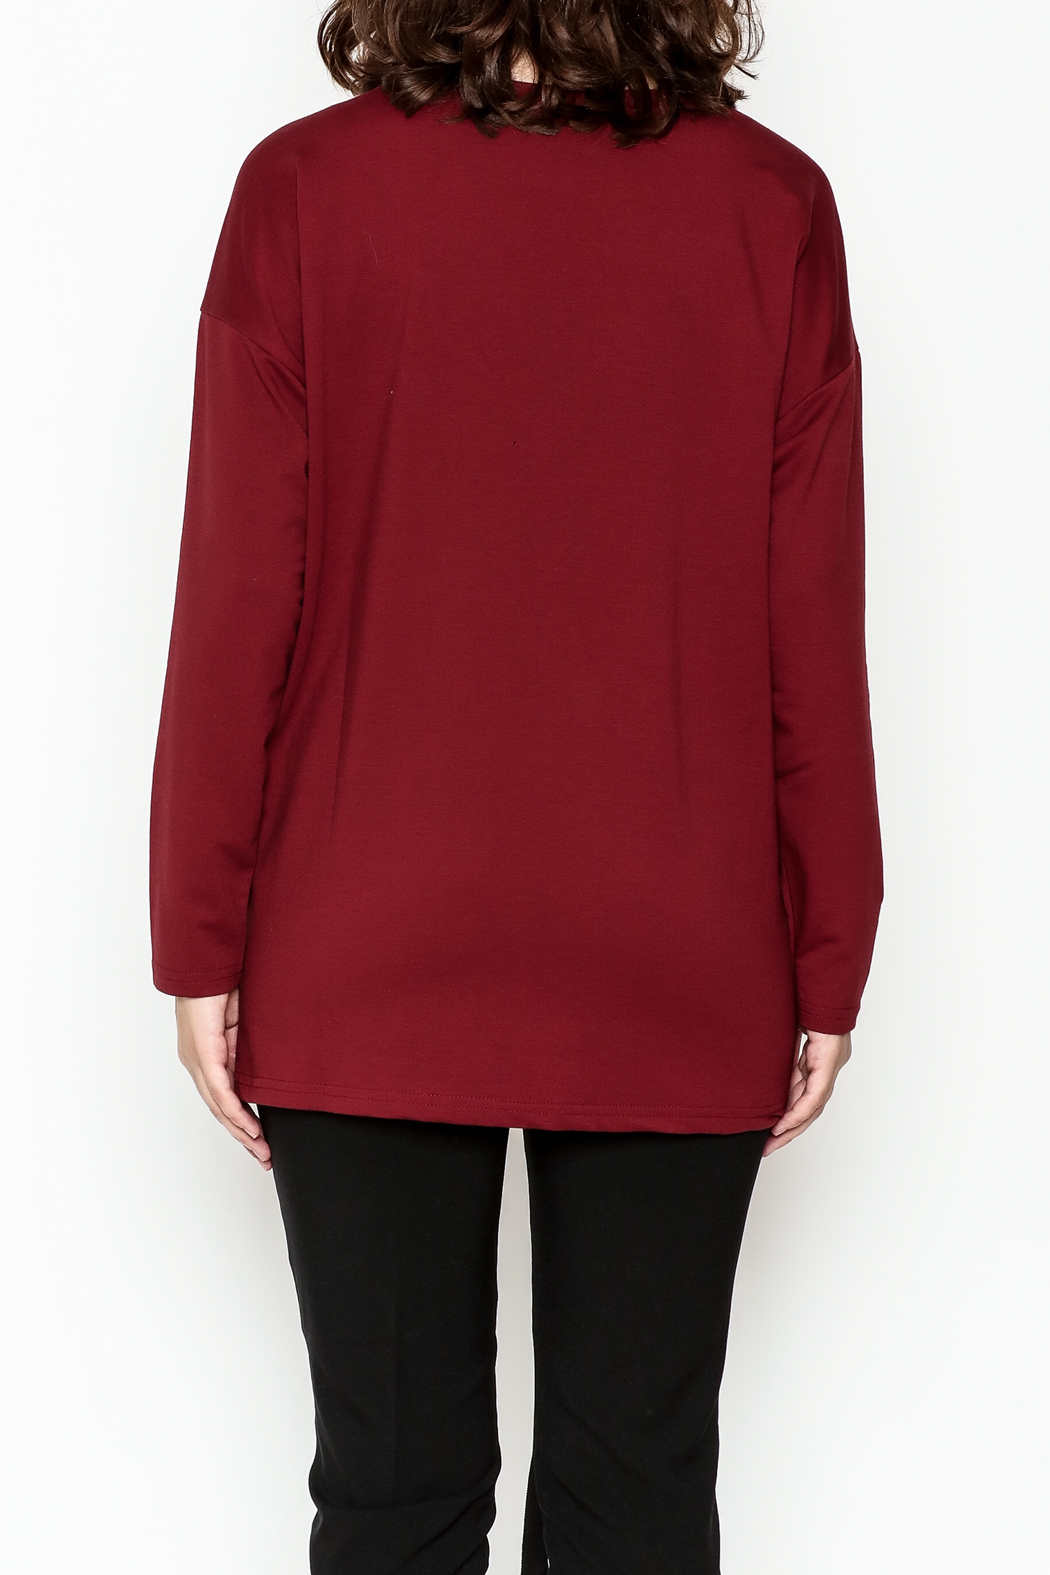 Very J Drawstring Accent Top - Back Cropped Image